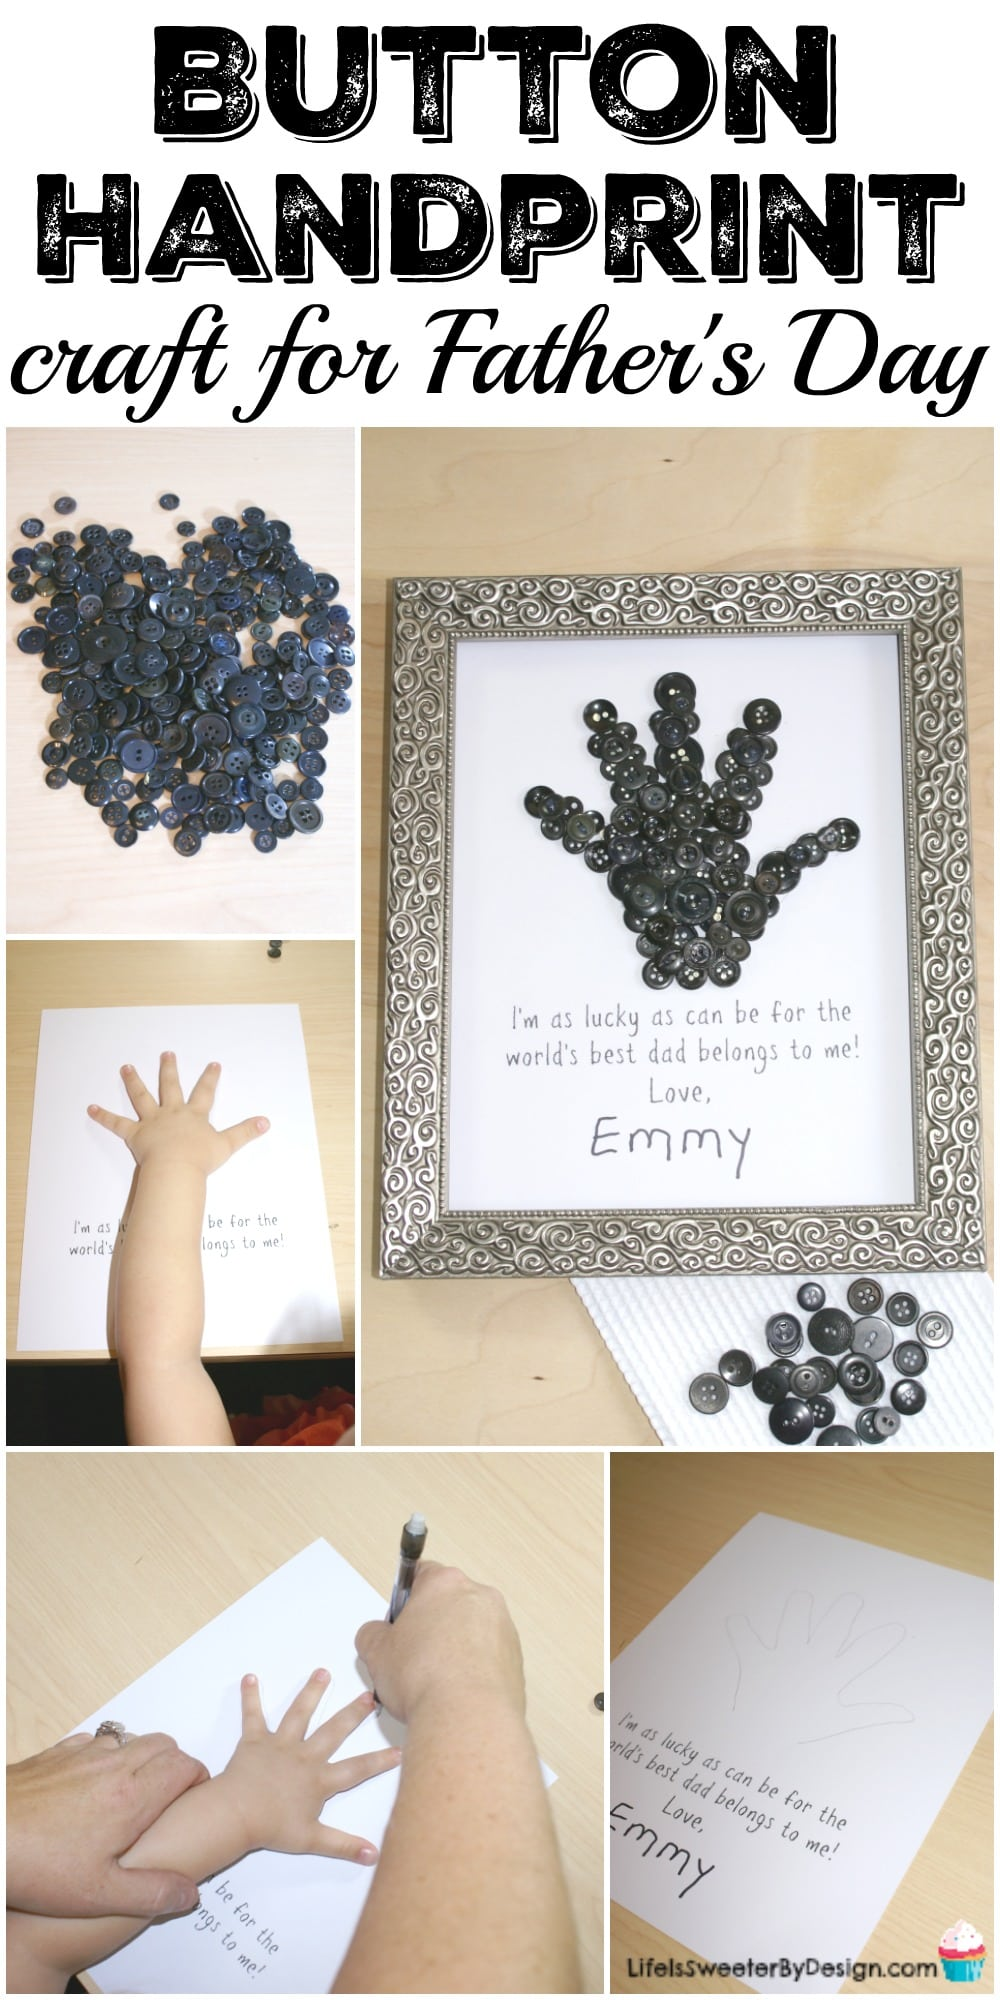 This button handprint craft is fun and easy to make! The DIY project is perfect for a personalized Father's Day gift and even has a free printable to make it simple.